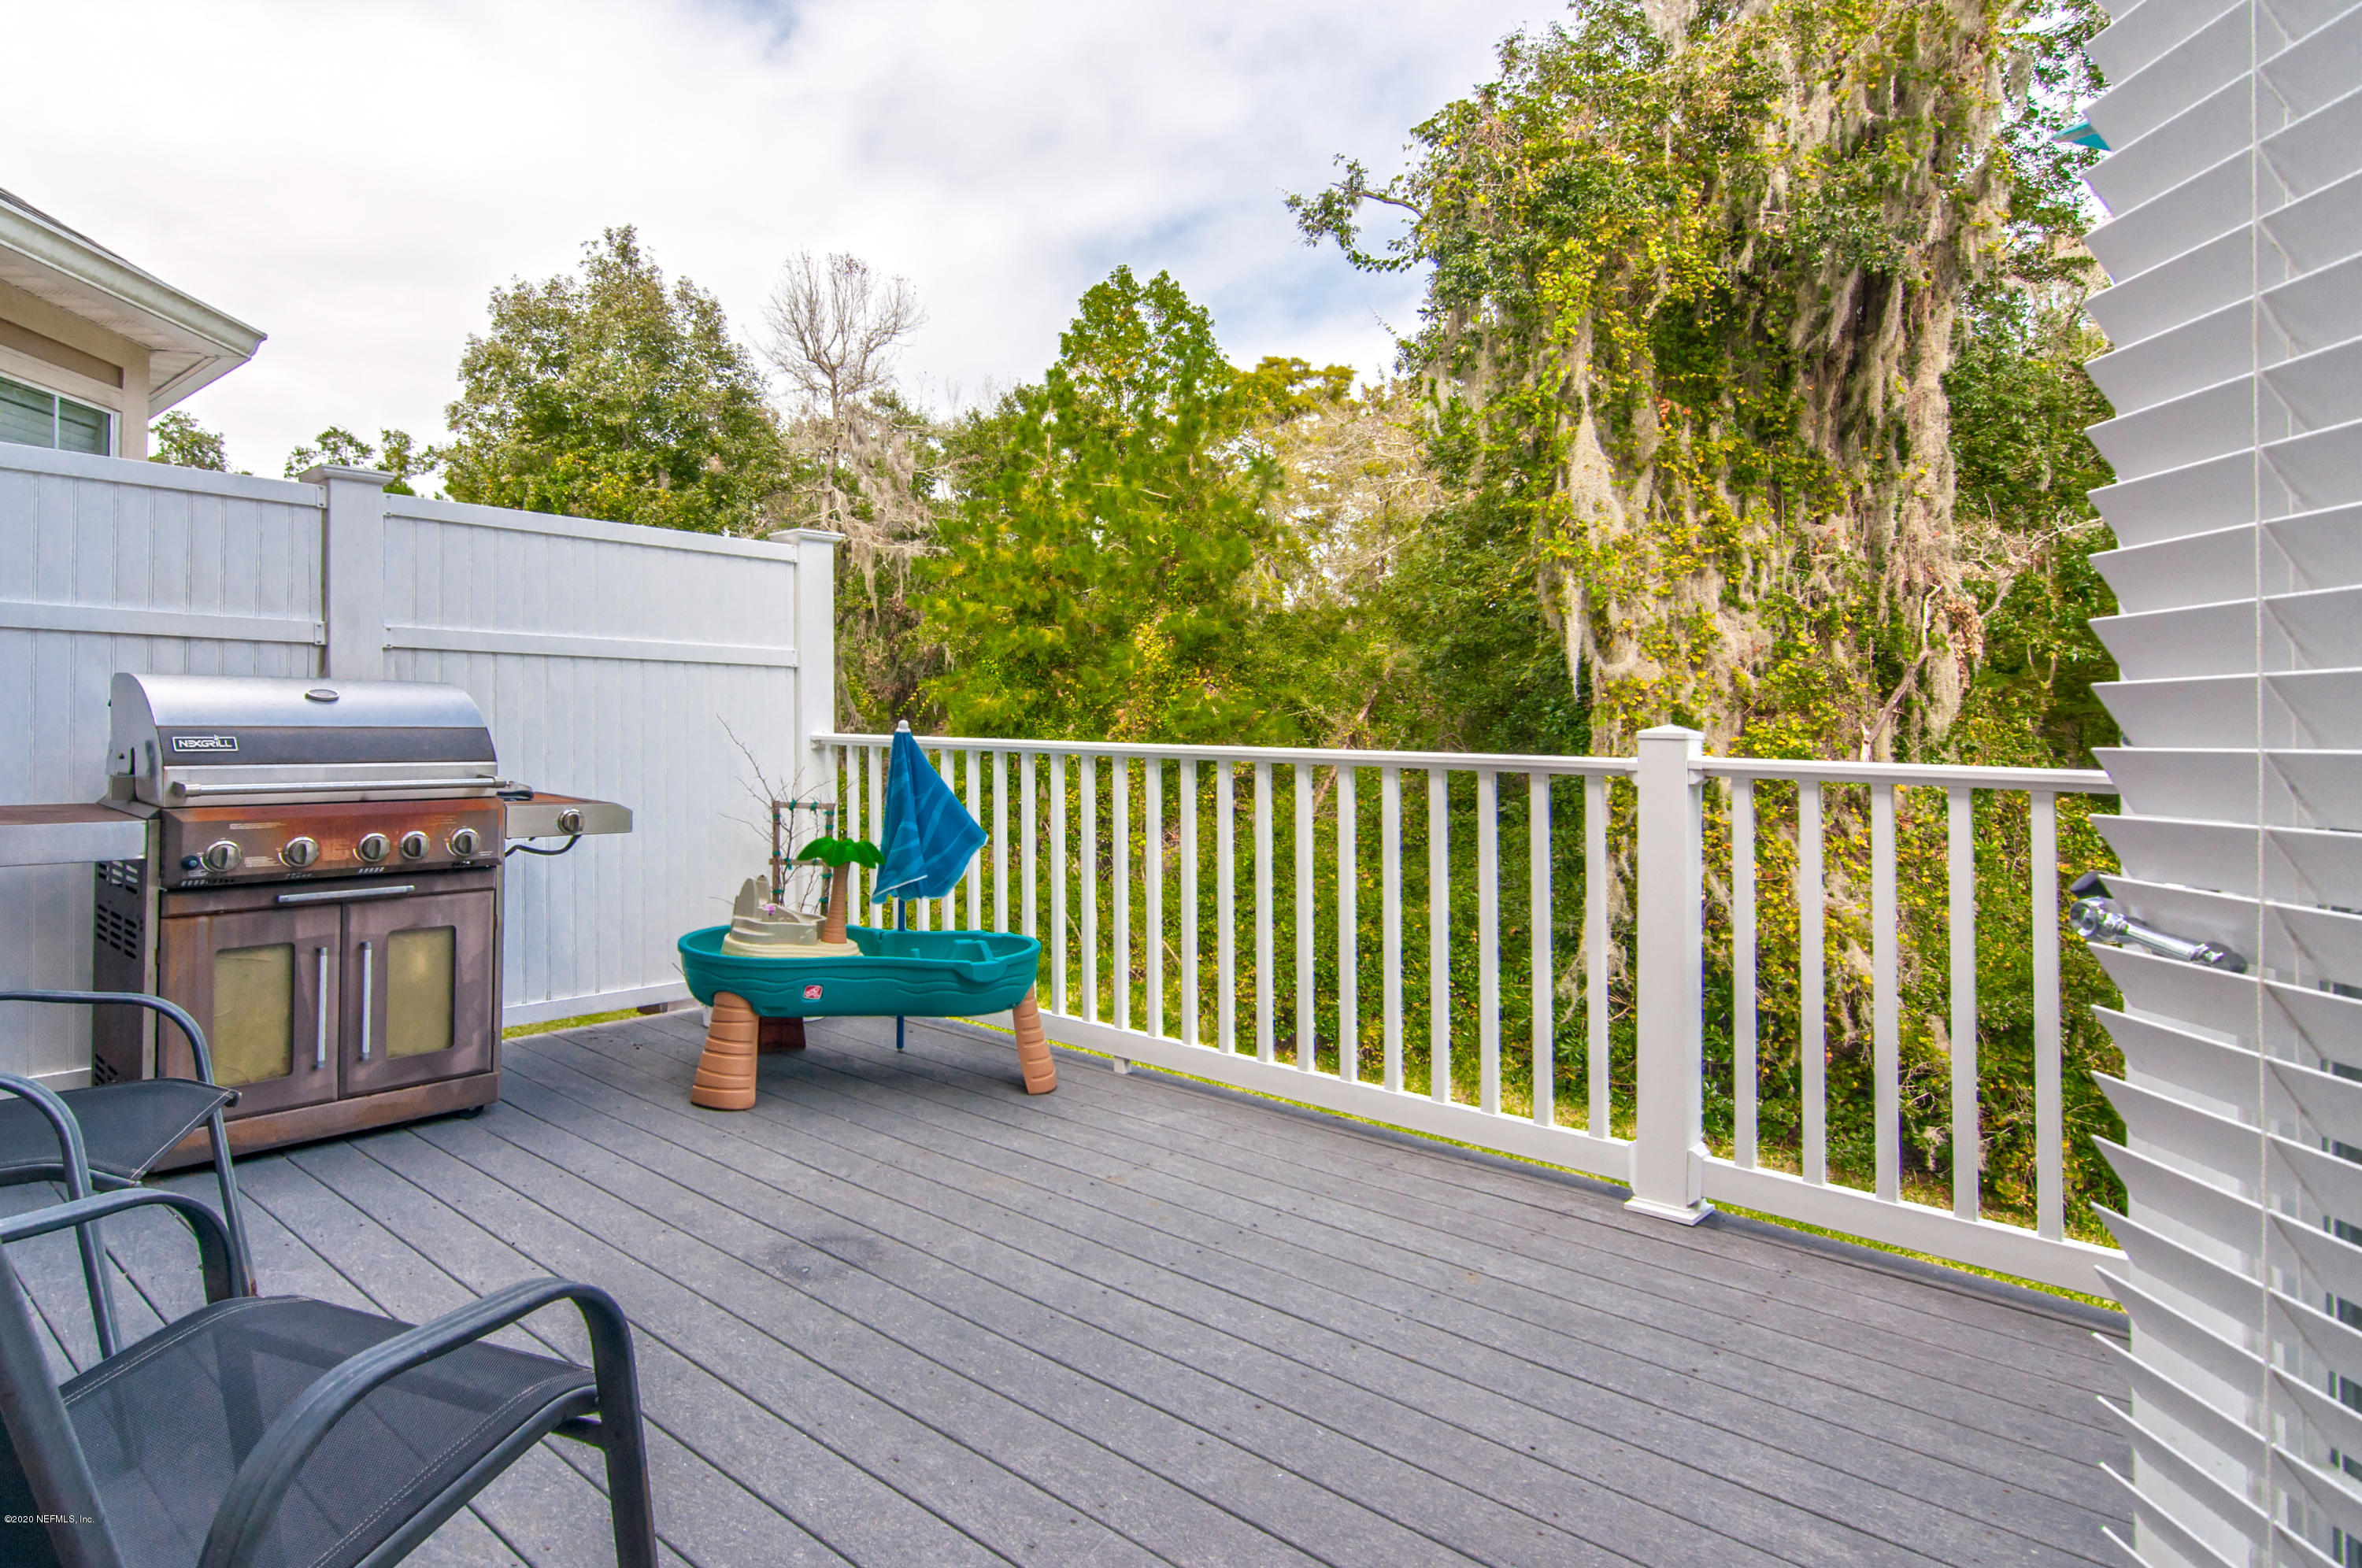 4253 STUDIO PARK, JACKSONVILLE, FLORIDA 32216, 4 Bedrooms Bedrooms, ,3 BathroomsBathrooms,Residential,For sale,STUDIO PARK,1068324